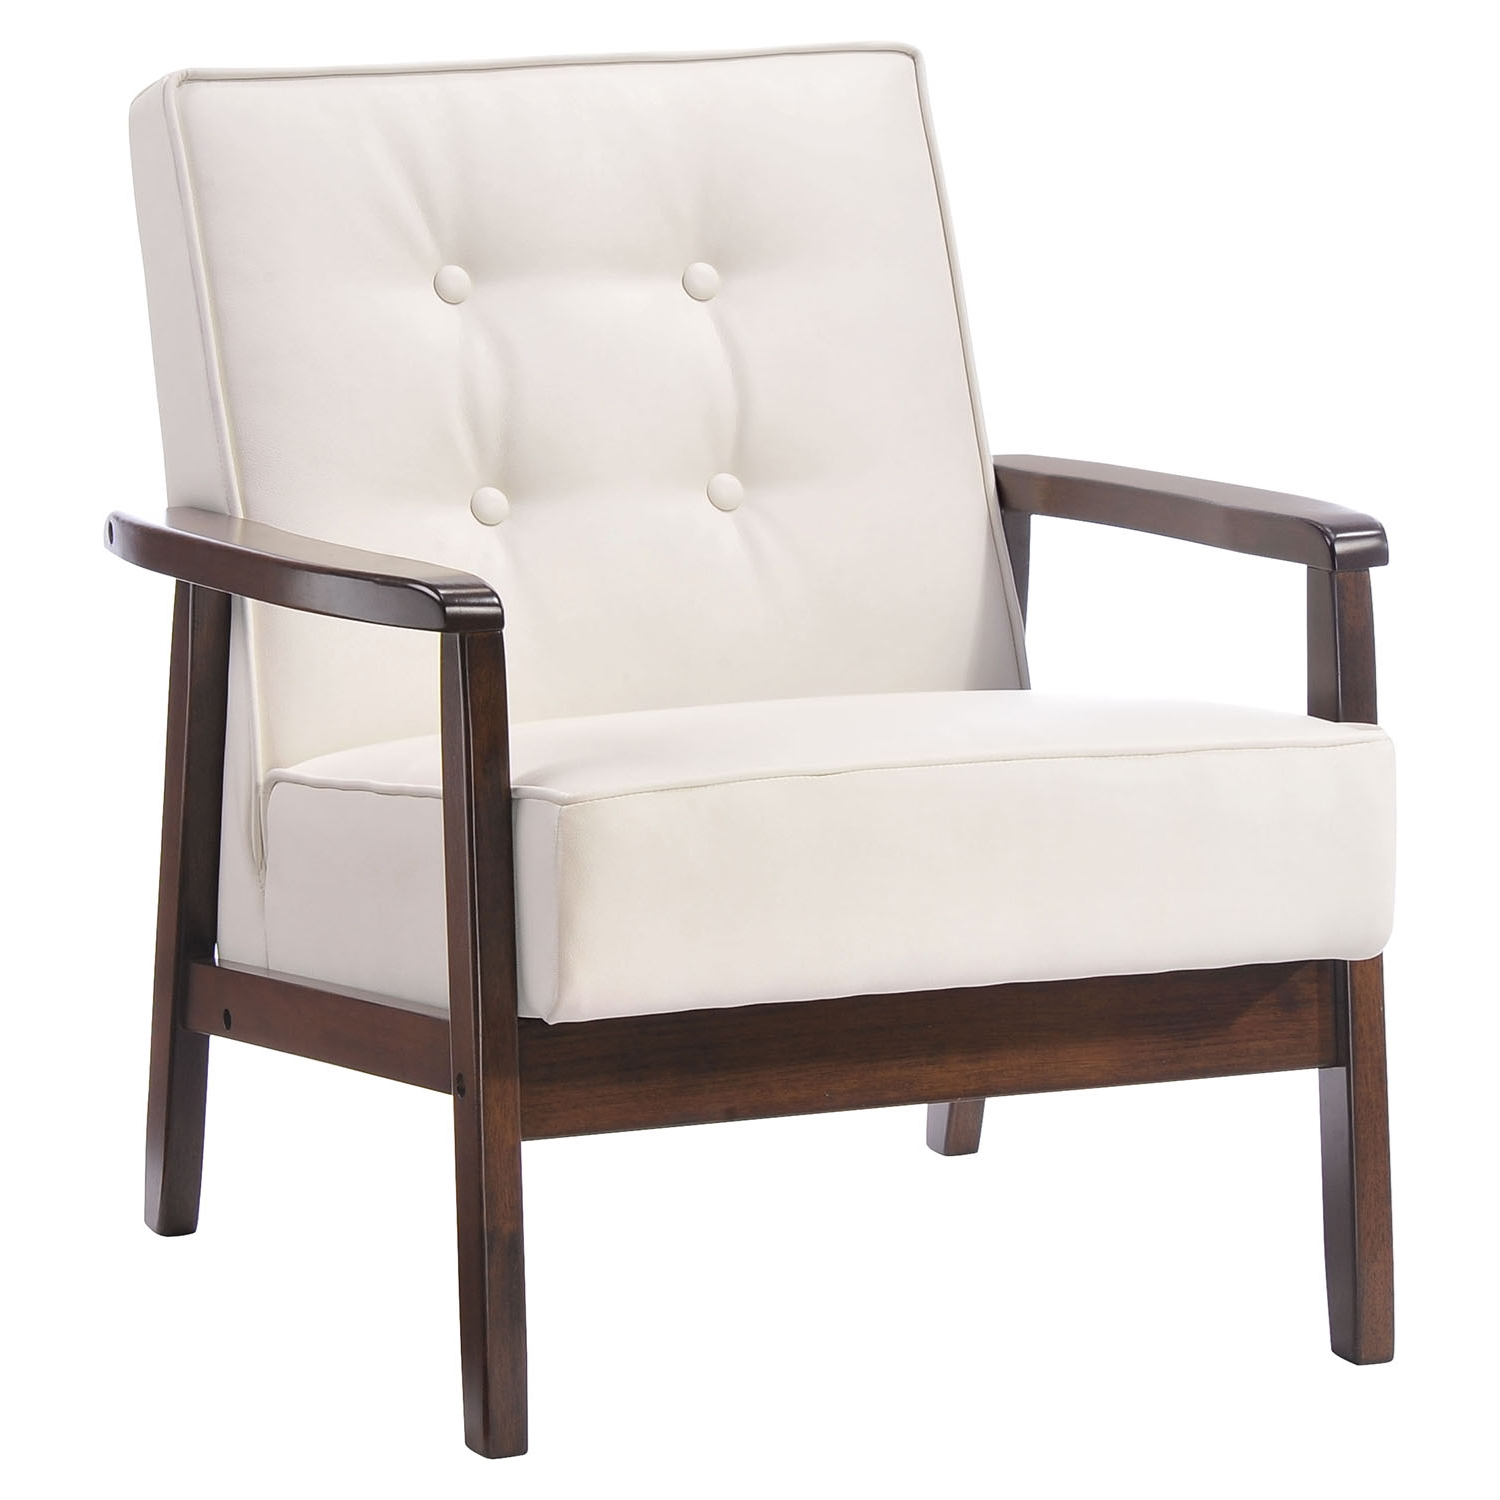 Aventura Arm Chair - Tufted, White - ZM-900639